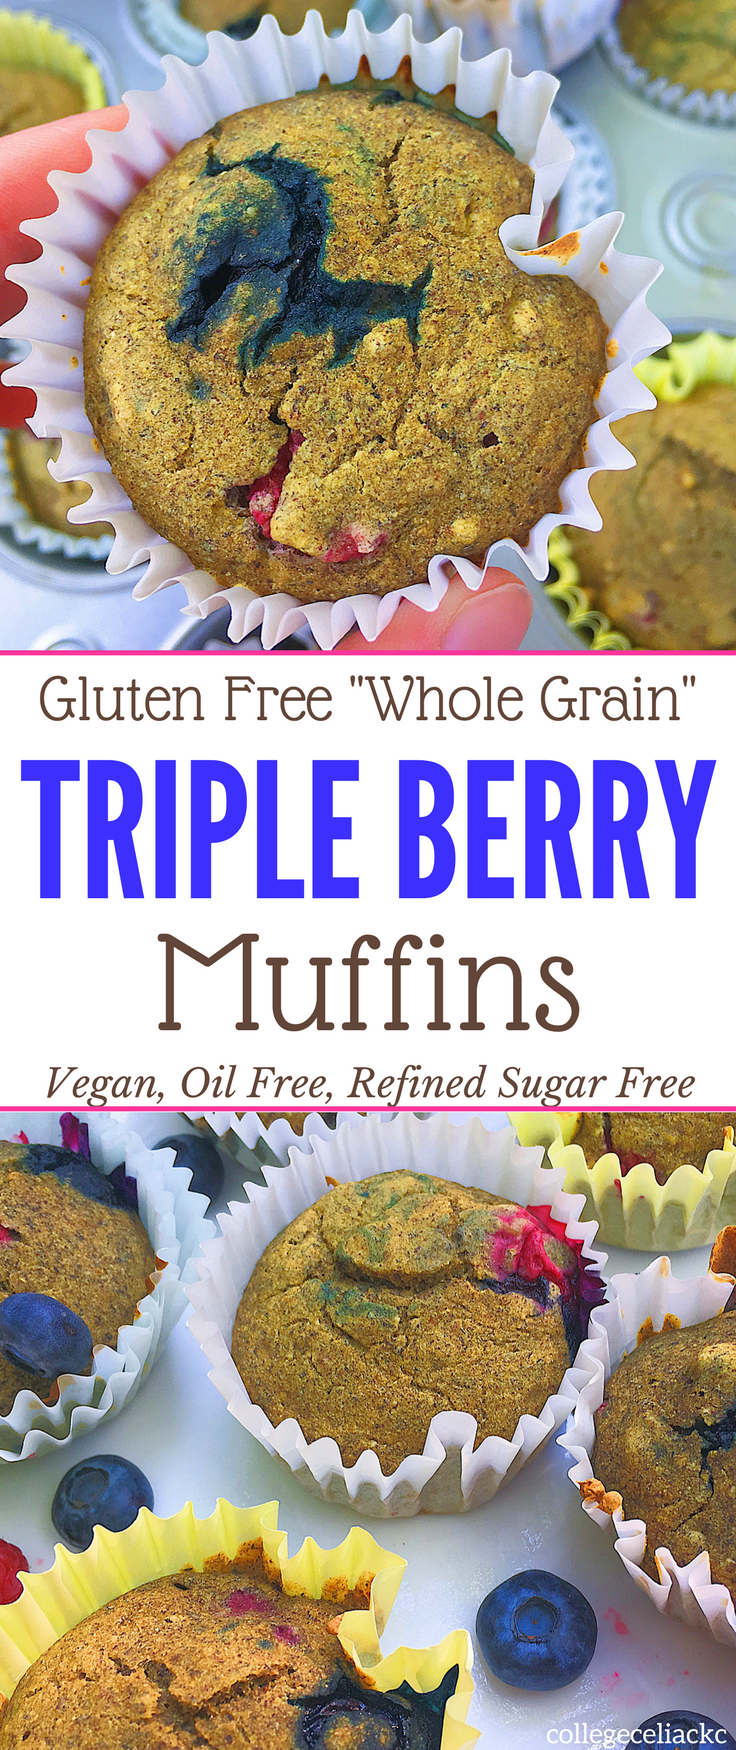 Craving a blueberry muffin recipe that is free of allergens but packed with flavor? Check out thes #glutenfree, #vegan and refined #sugarfree muffins!